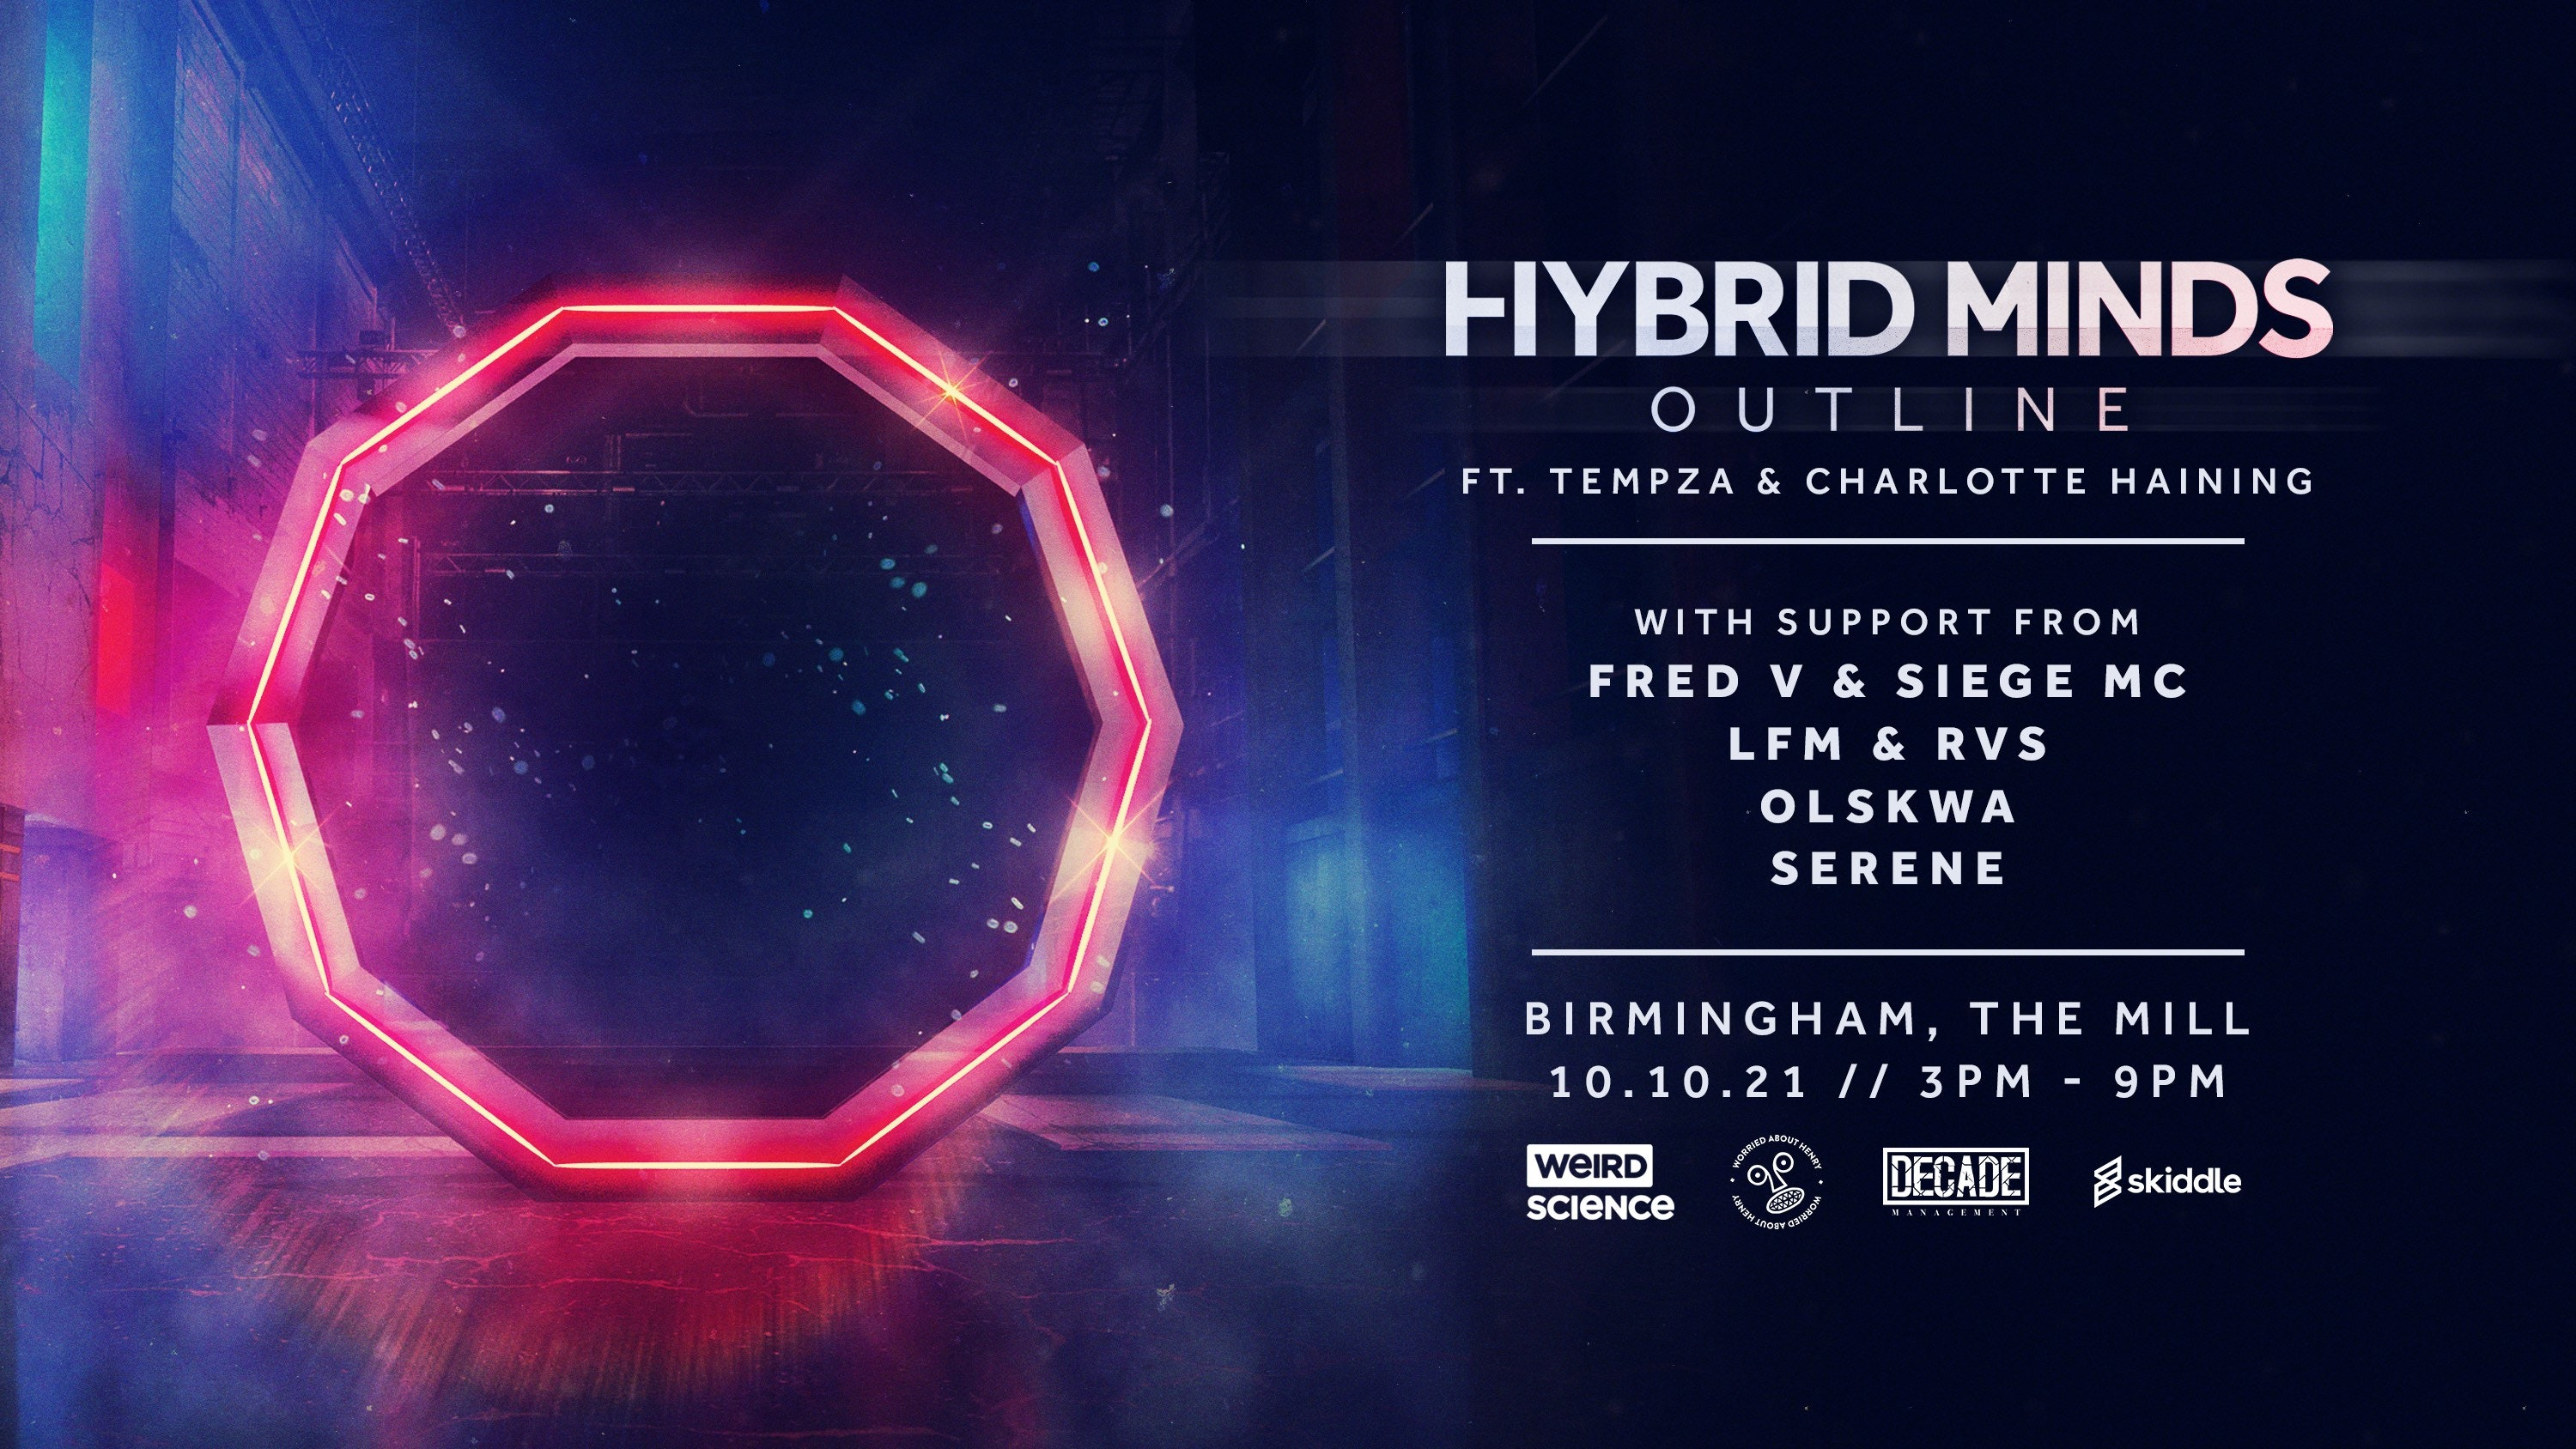 Hybrid Minds: Outline – Birmingham